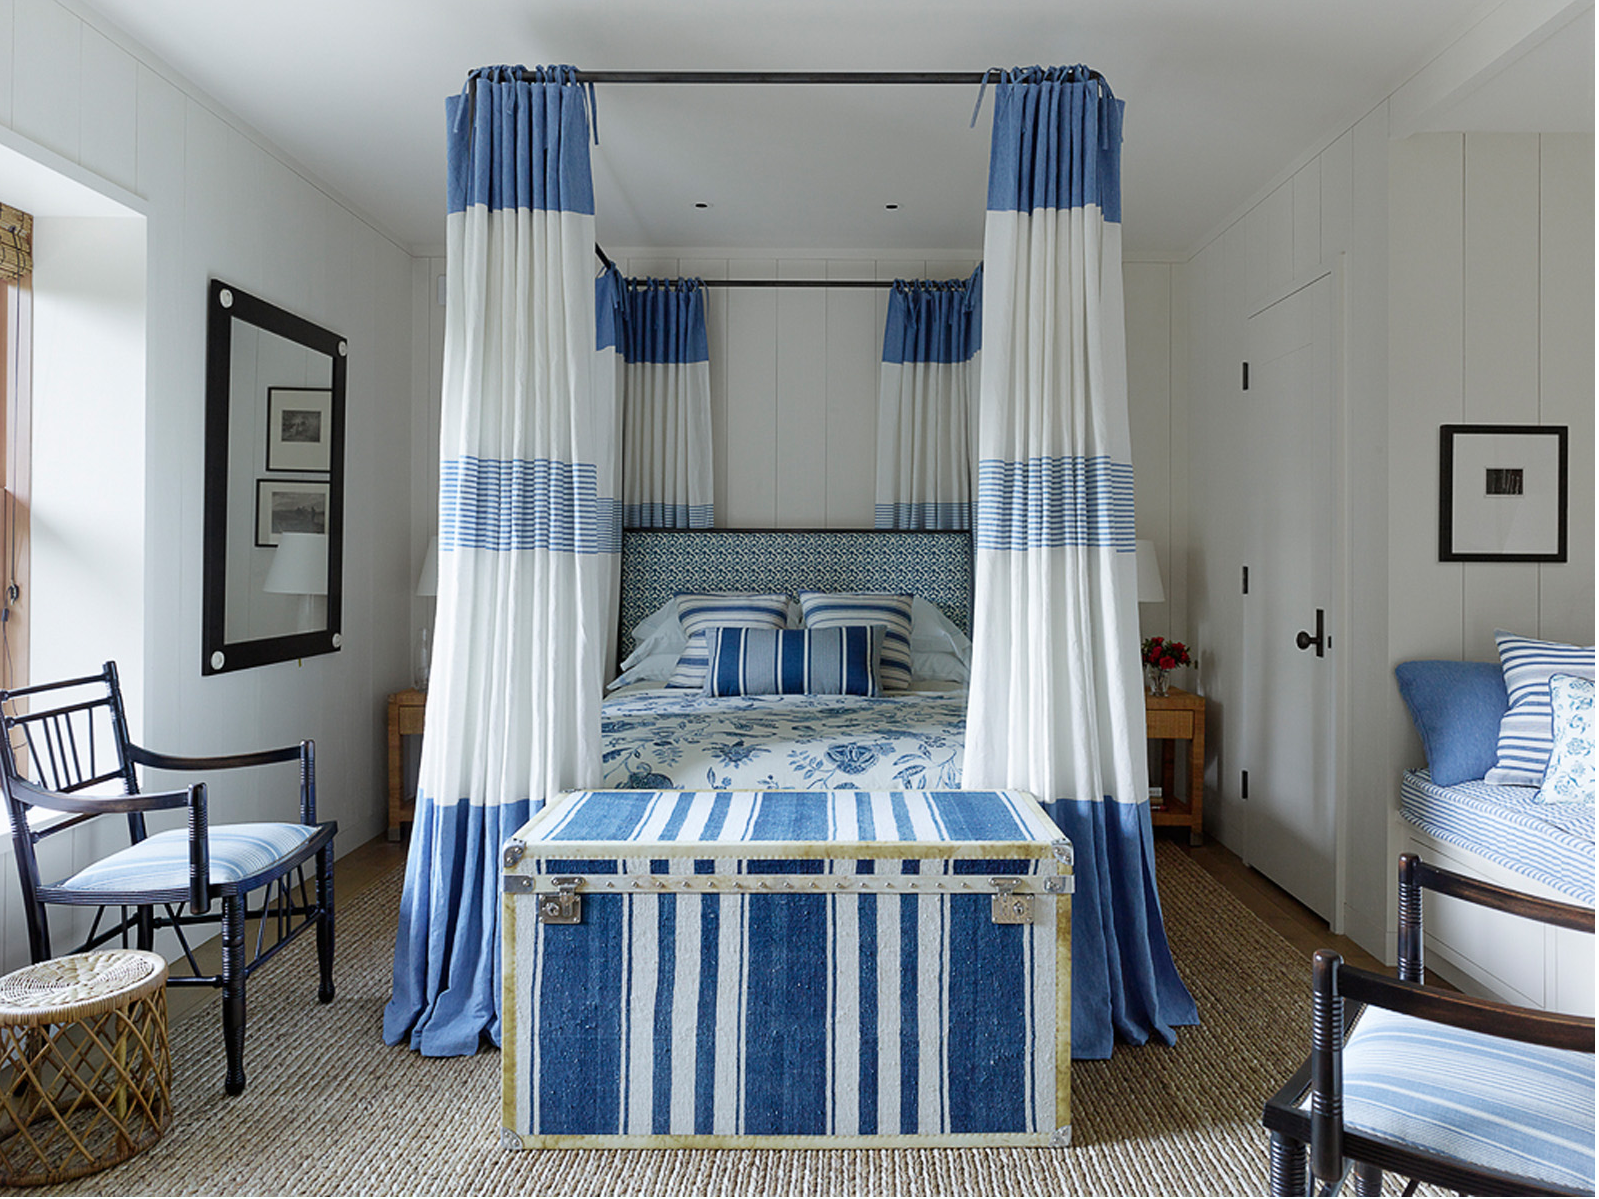 7   image and interior design:  mark d sikes